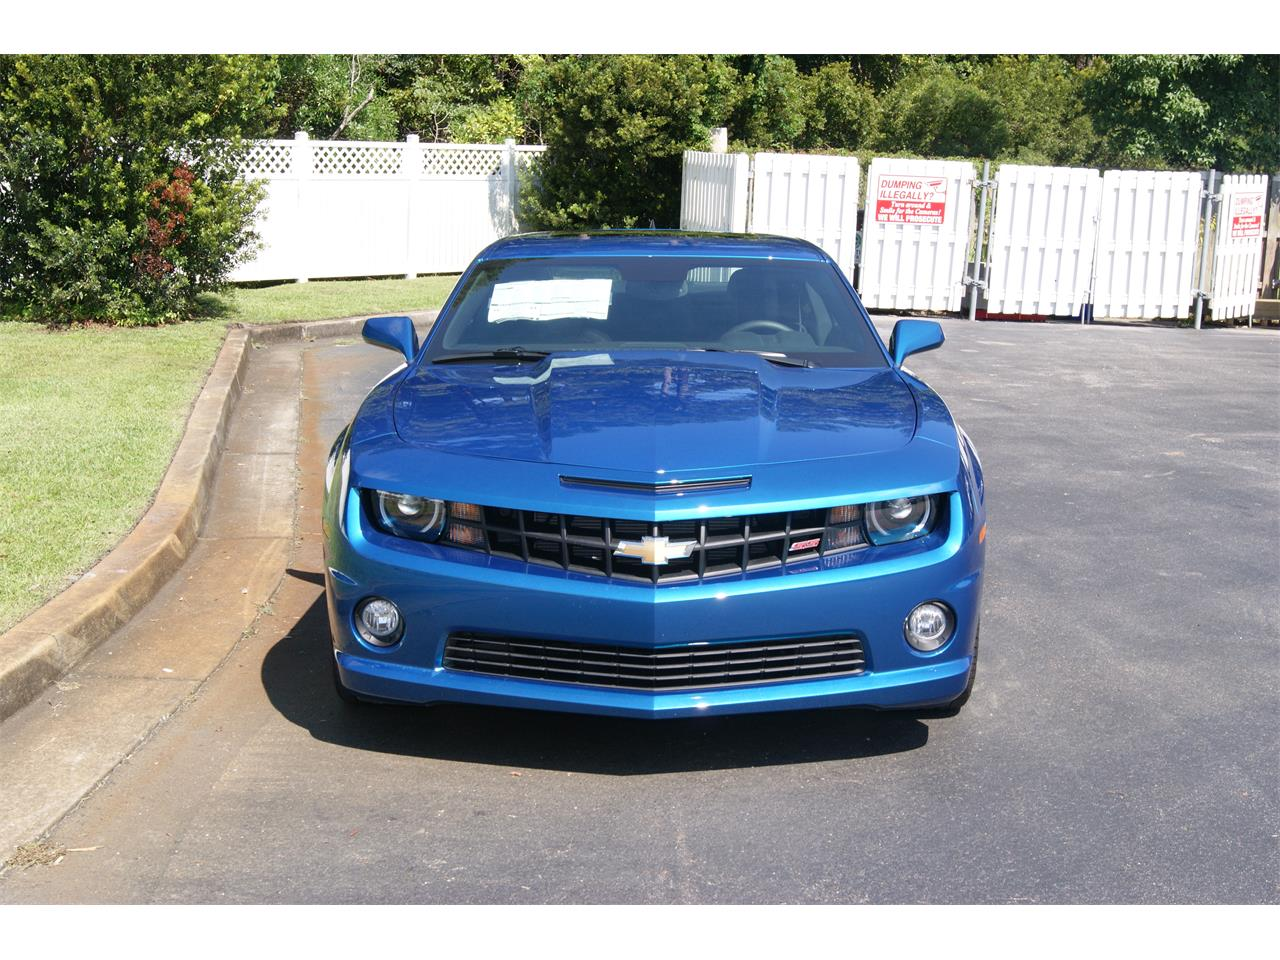 Large Picture of 2010 Camaro - $29,000.00 - Q77R